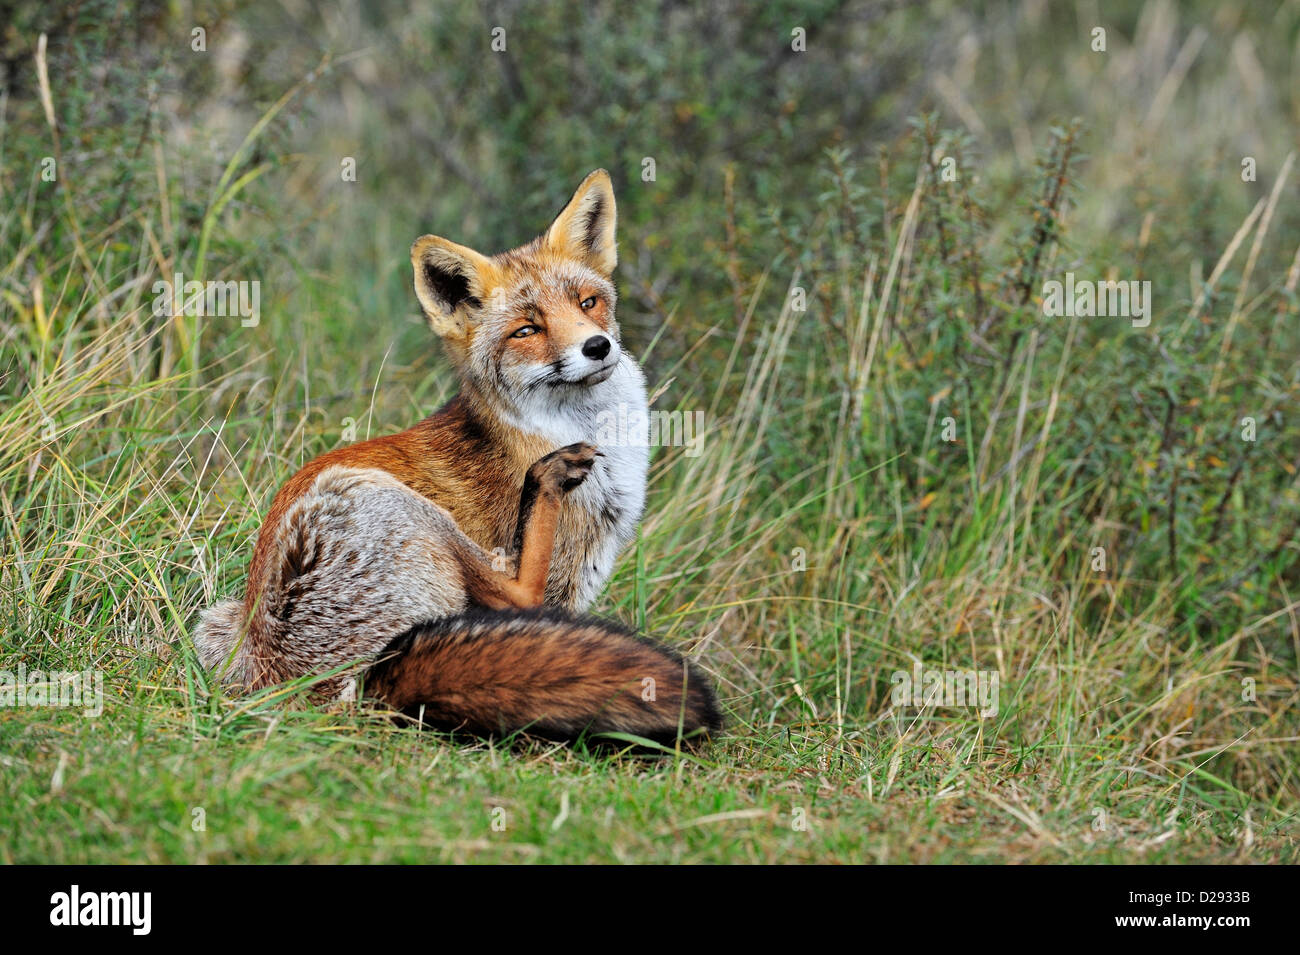 Red fox (Vulpes vulpes) in thicket grooming its pelt by scratching fur with hind leg in autumn Stock Photo